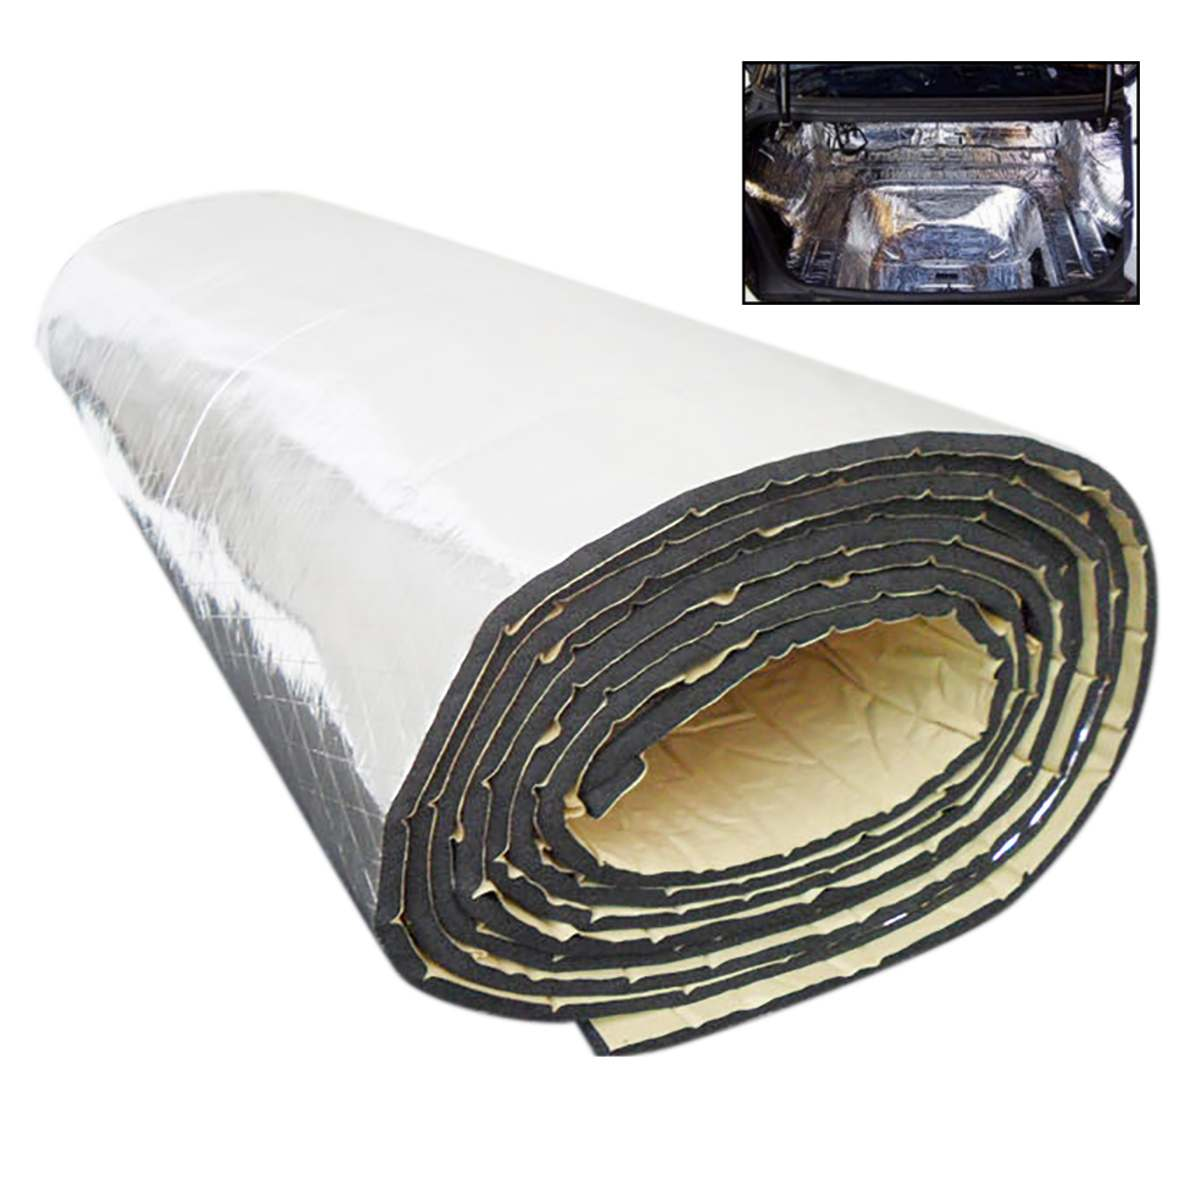 Car Insulation 64 Sqft Thermal Sound Deadener Block Automotive Heat /& Sound Made in USA//Closed Cell Foam Core #1 Selling Brand